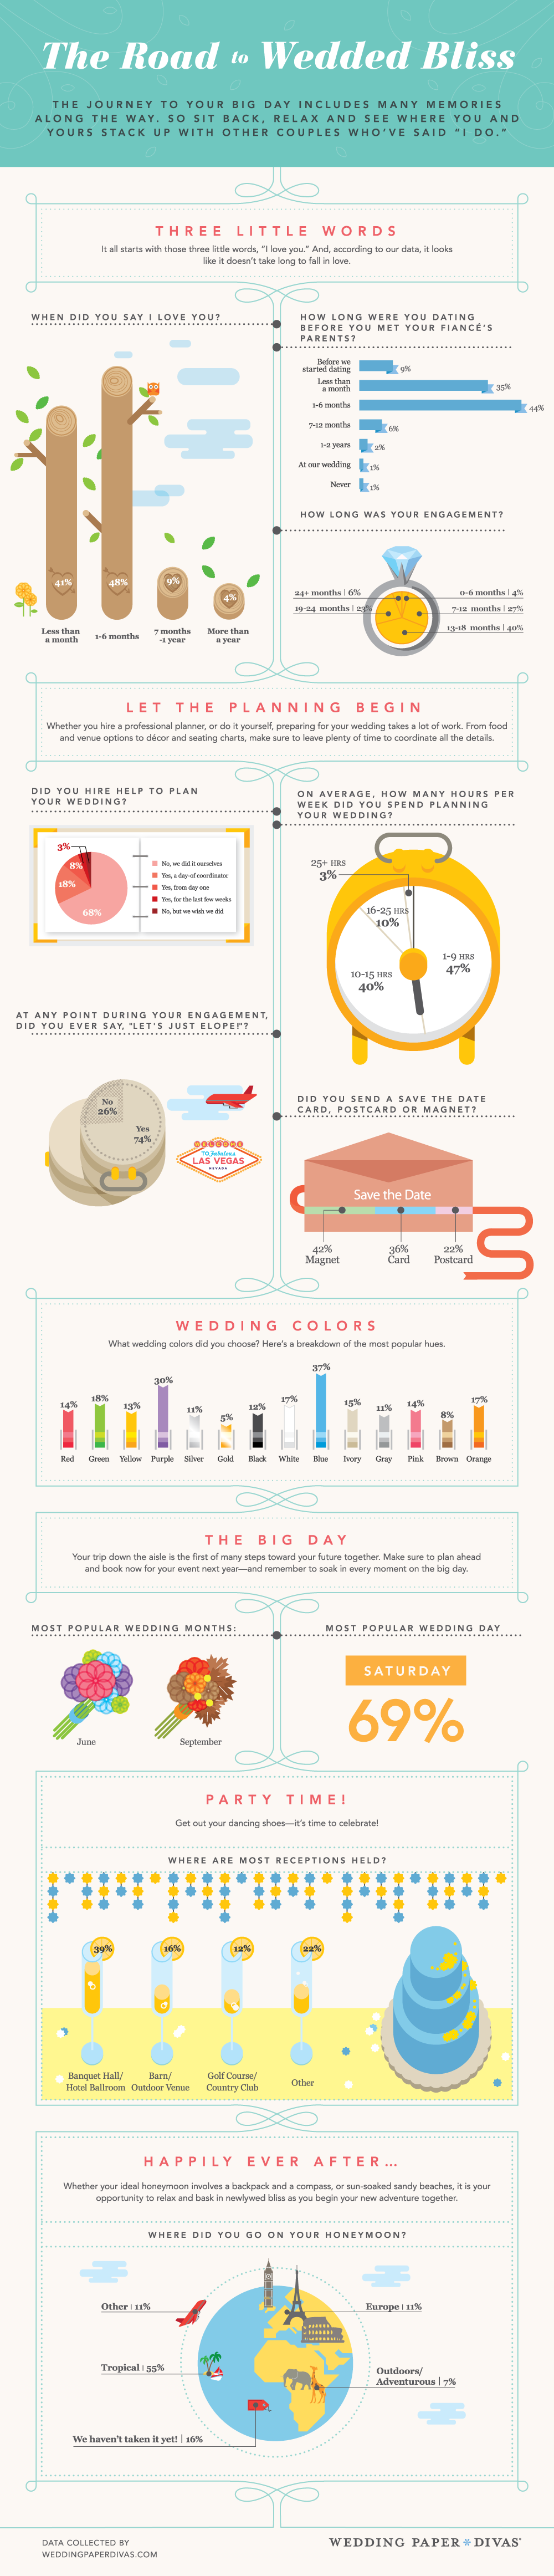 Wedding Paper Divas Road to Bliss Infographic